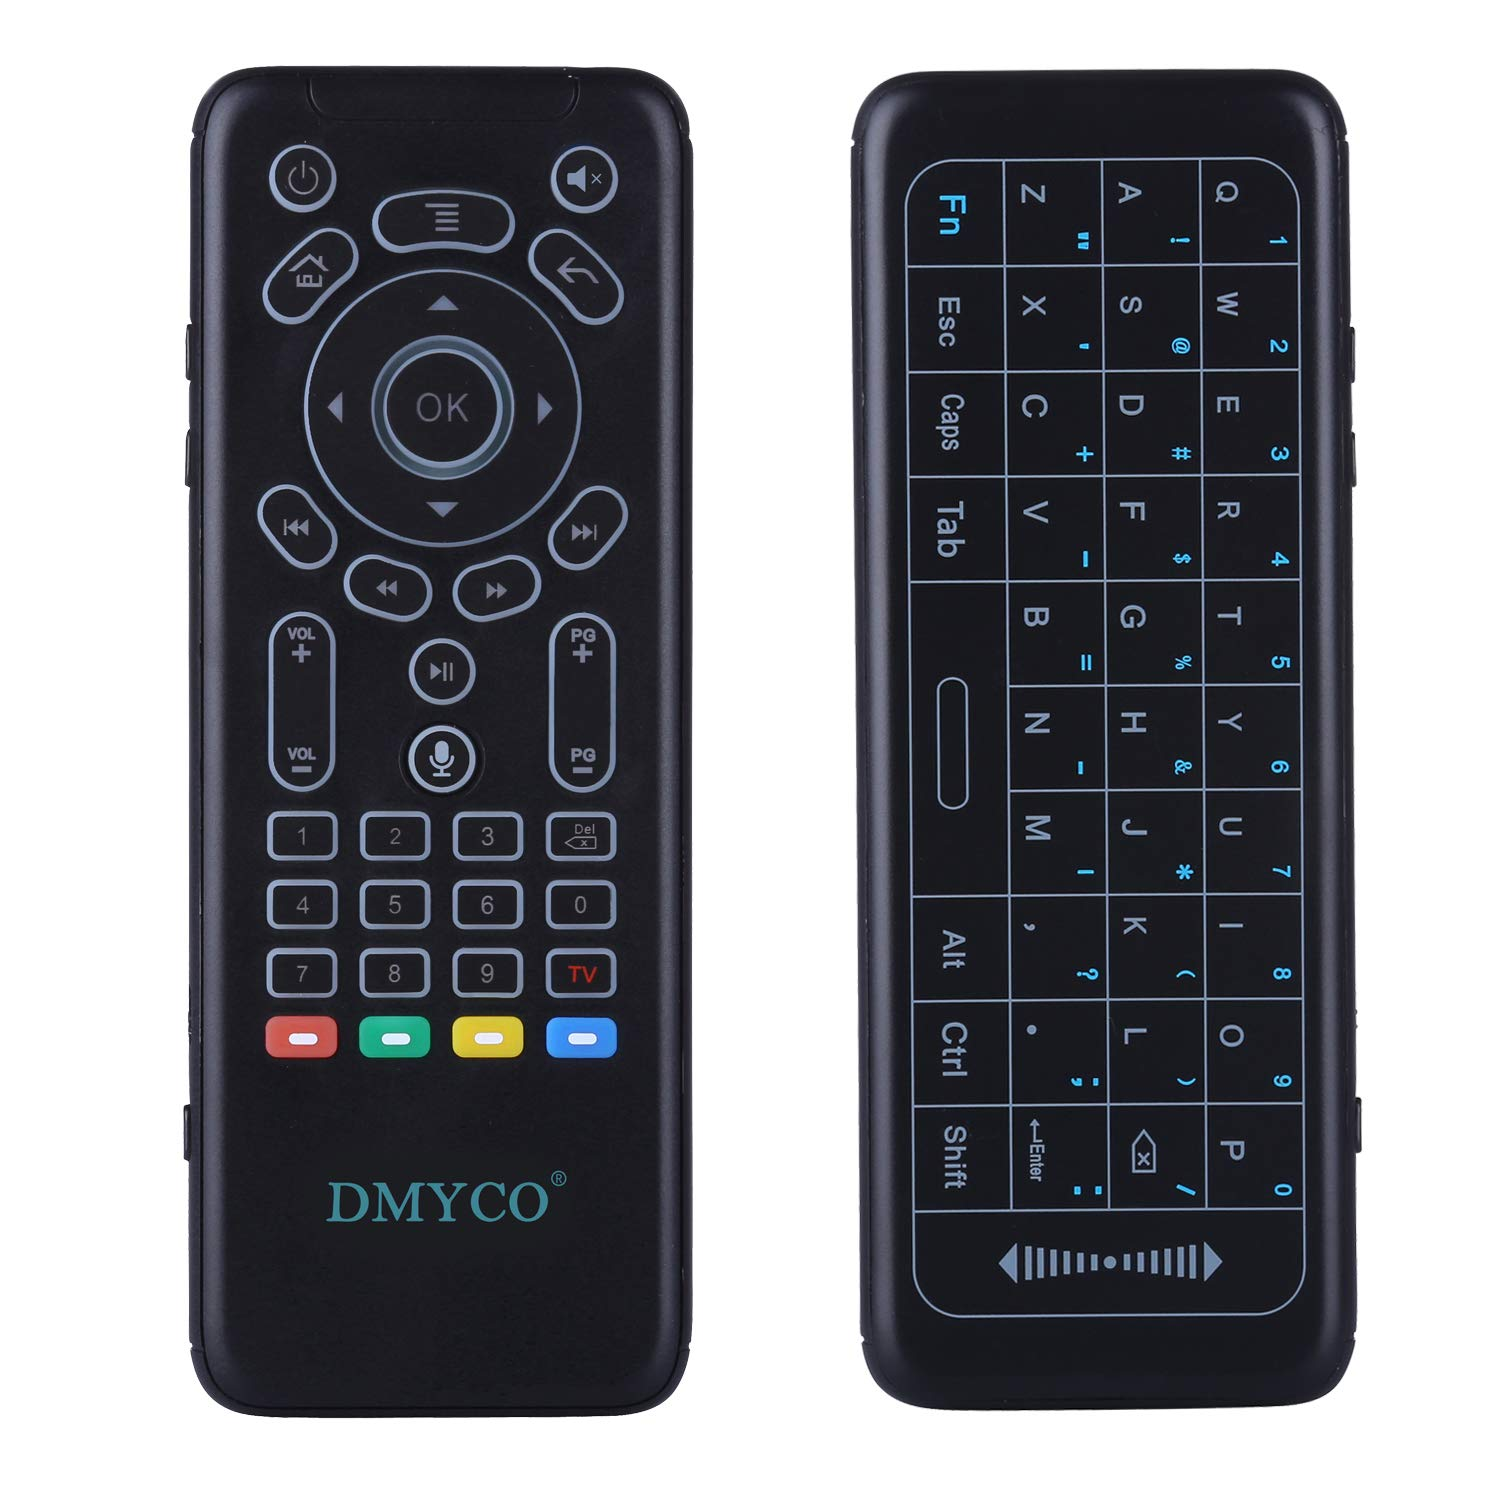 Great remote